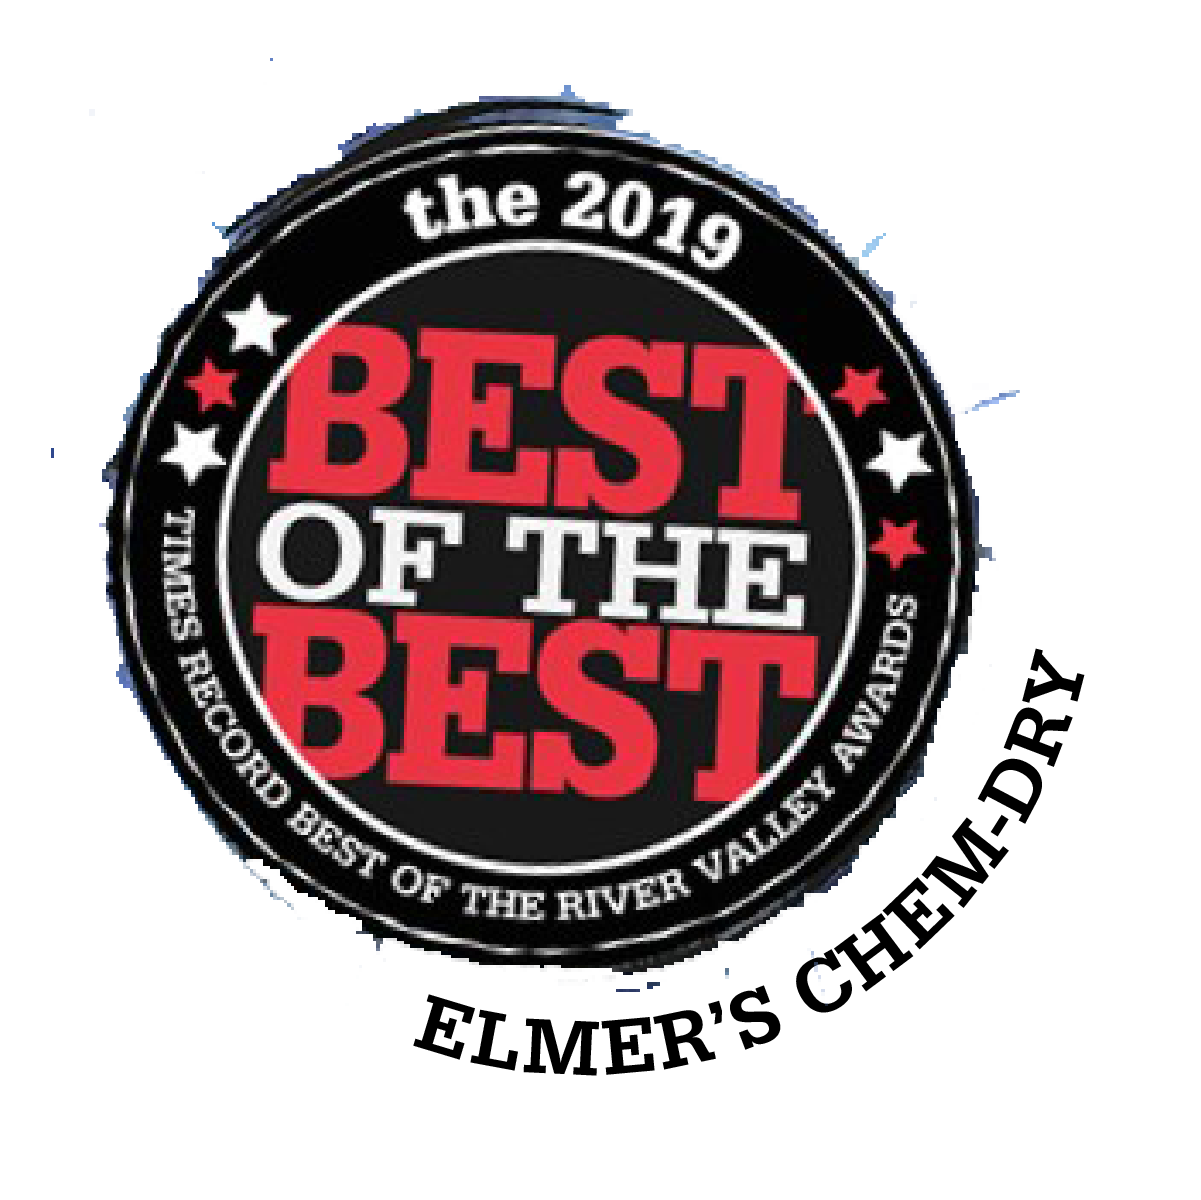 2019 Best of the Best awards sticker